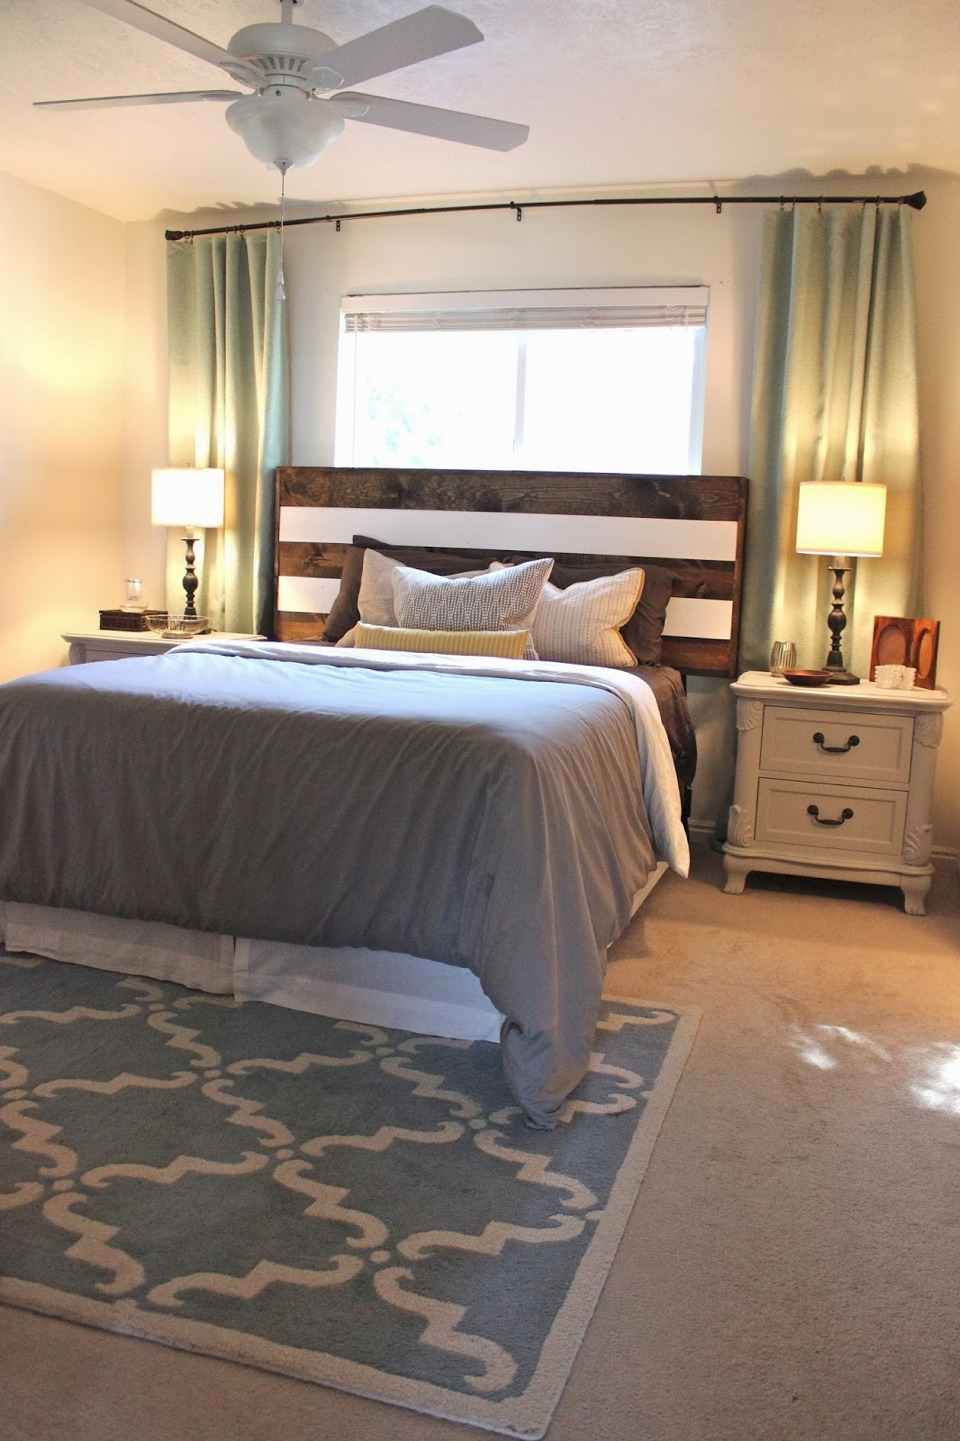 Small Room Ideas by Courtney Smart - Musely